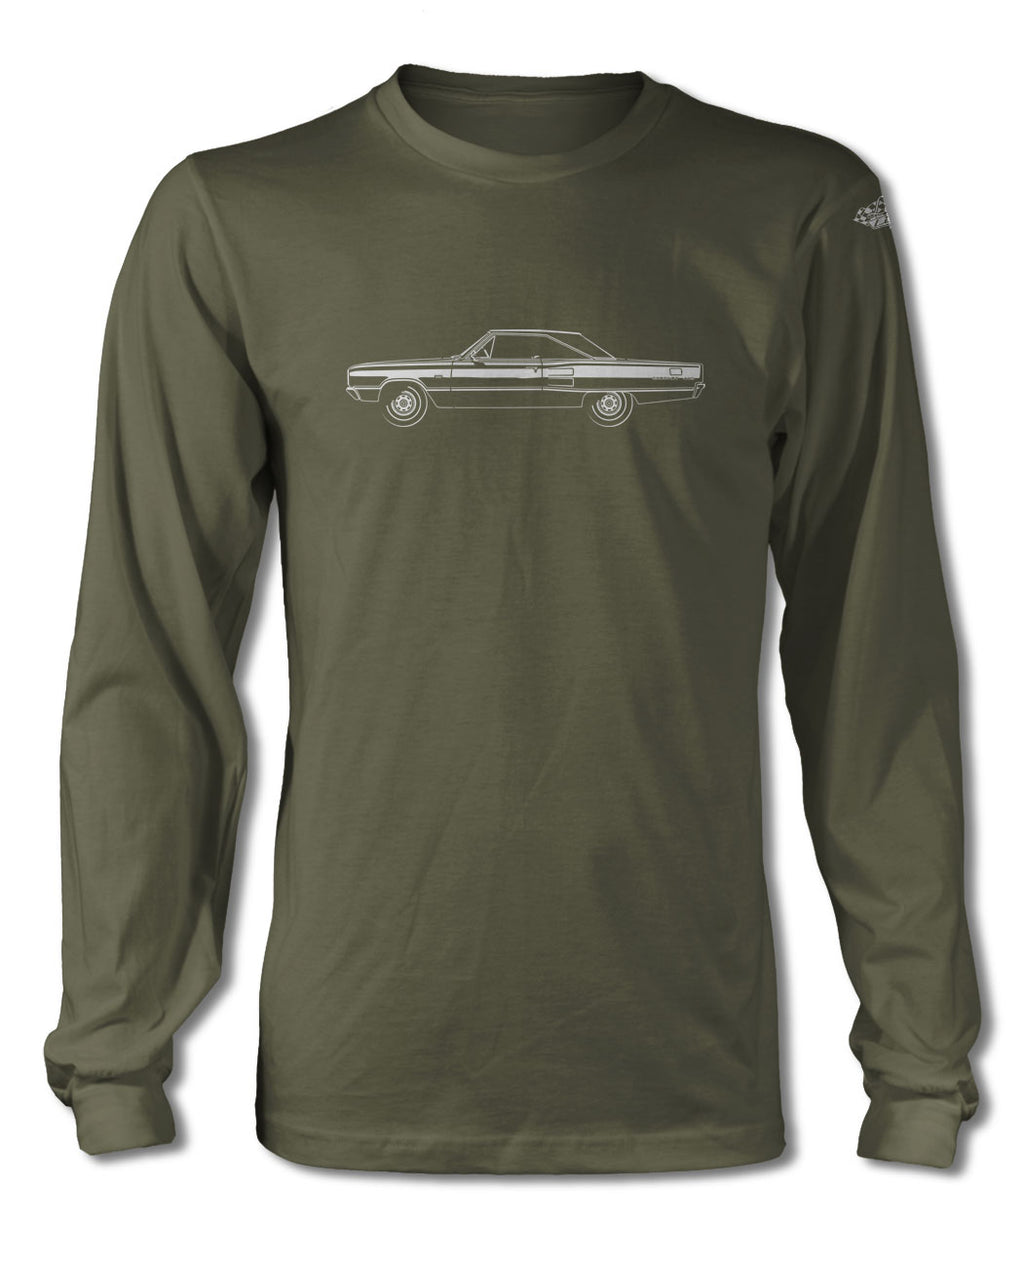 1967 Dodge Coronet 440 Hardtop T-Shirt - Long Sleeves - Side View